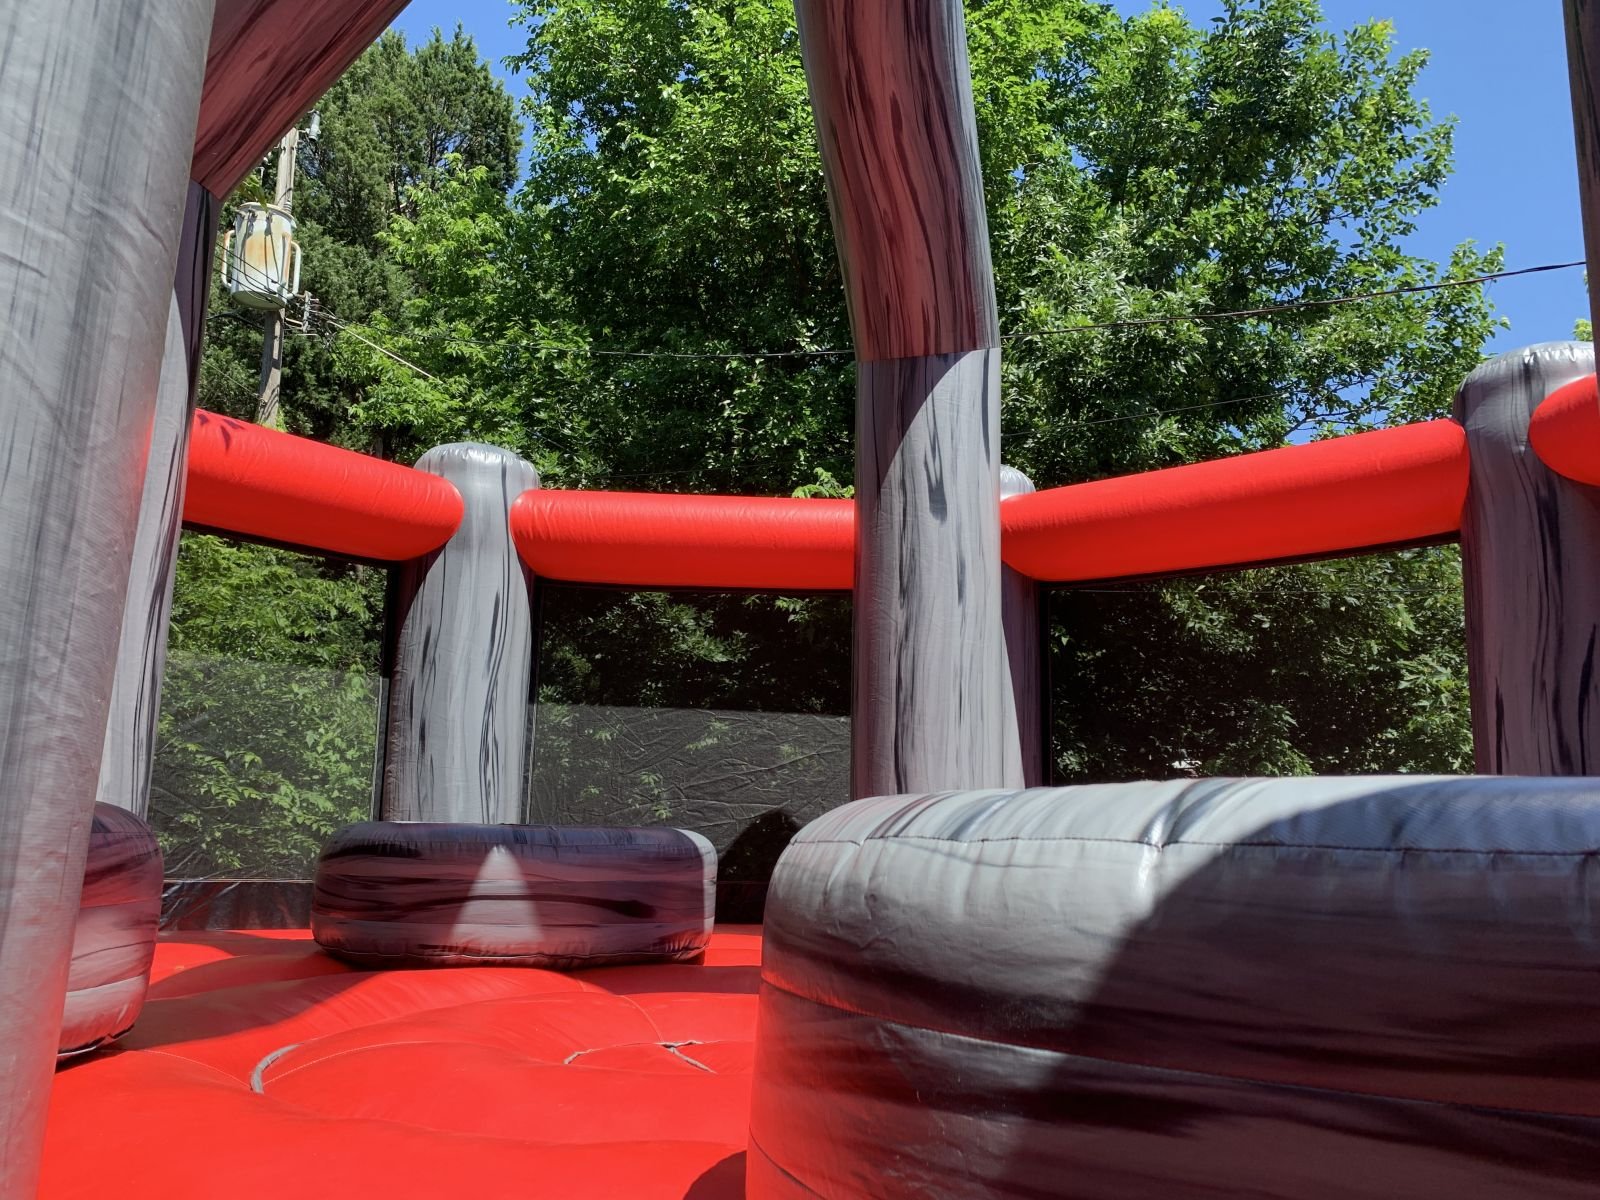 Interior of wrecking ball inflatable challenge game.